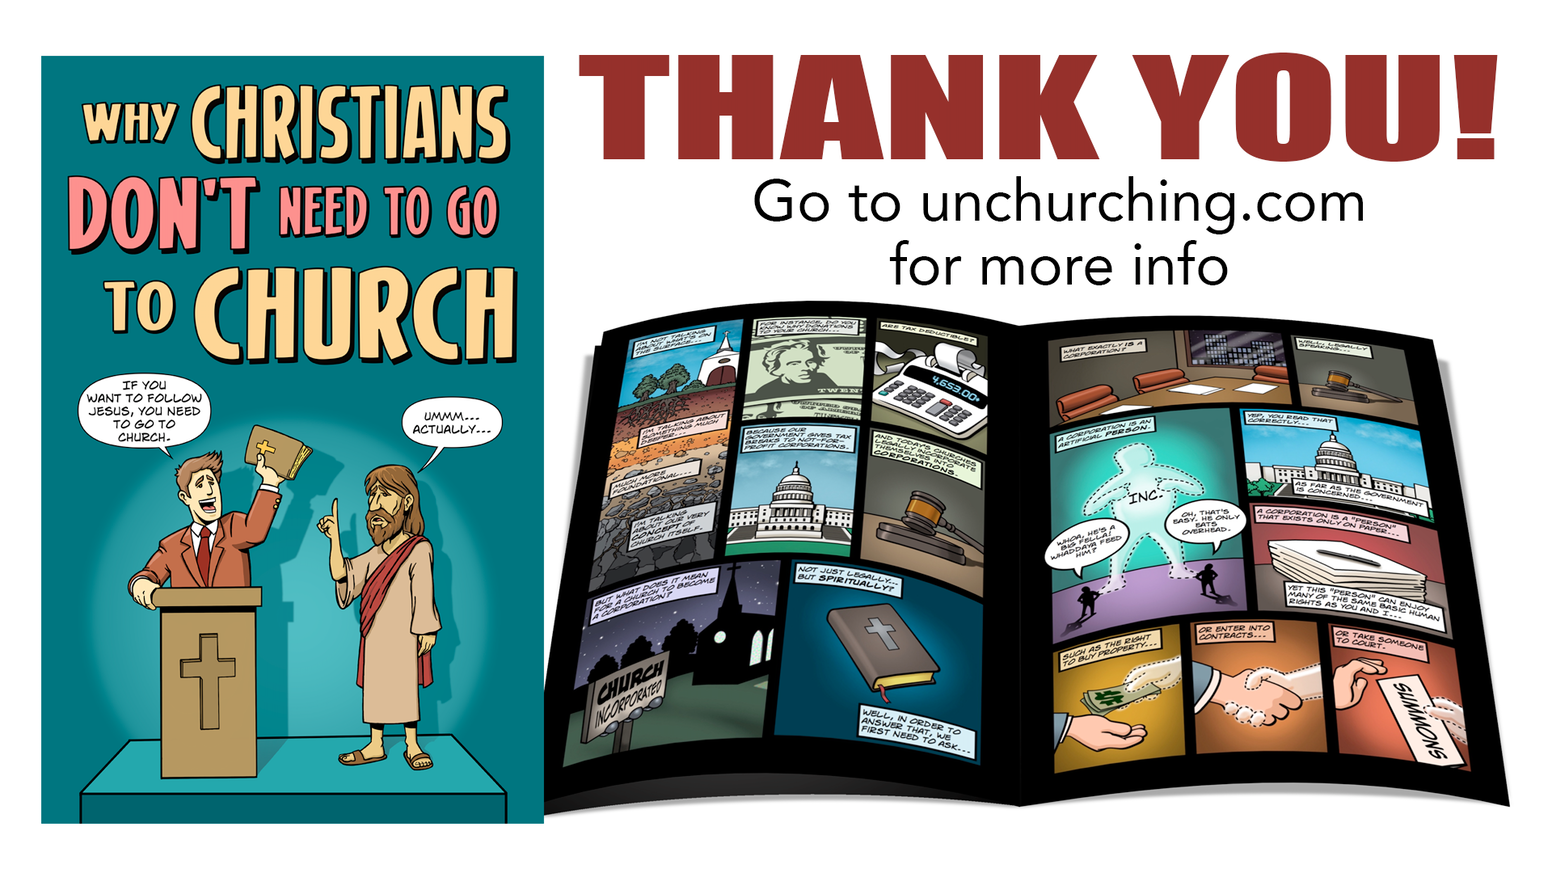 I'm creating a special comic book to let Christians know they don't have to go to church to be the church.